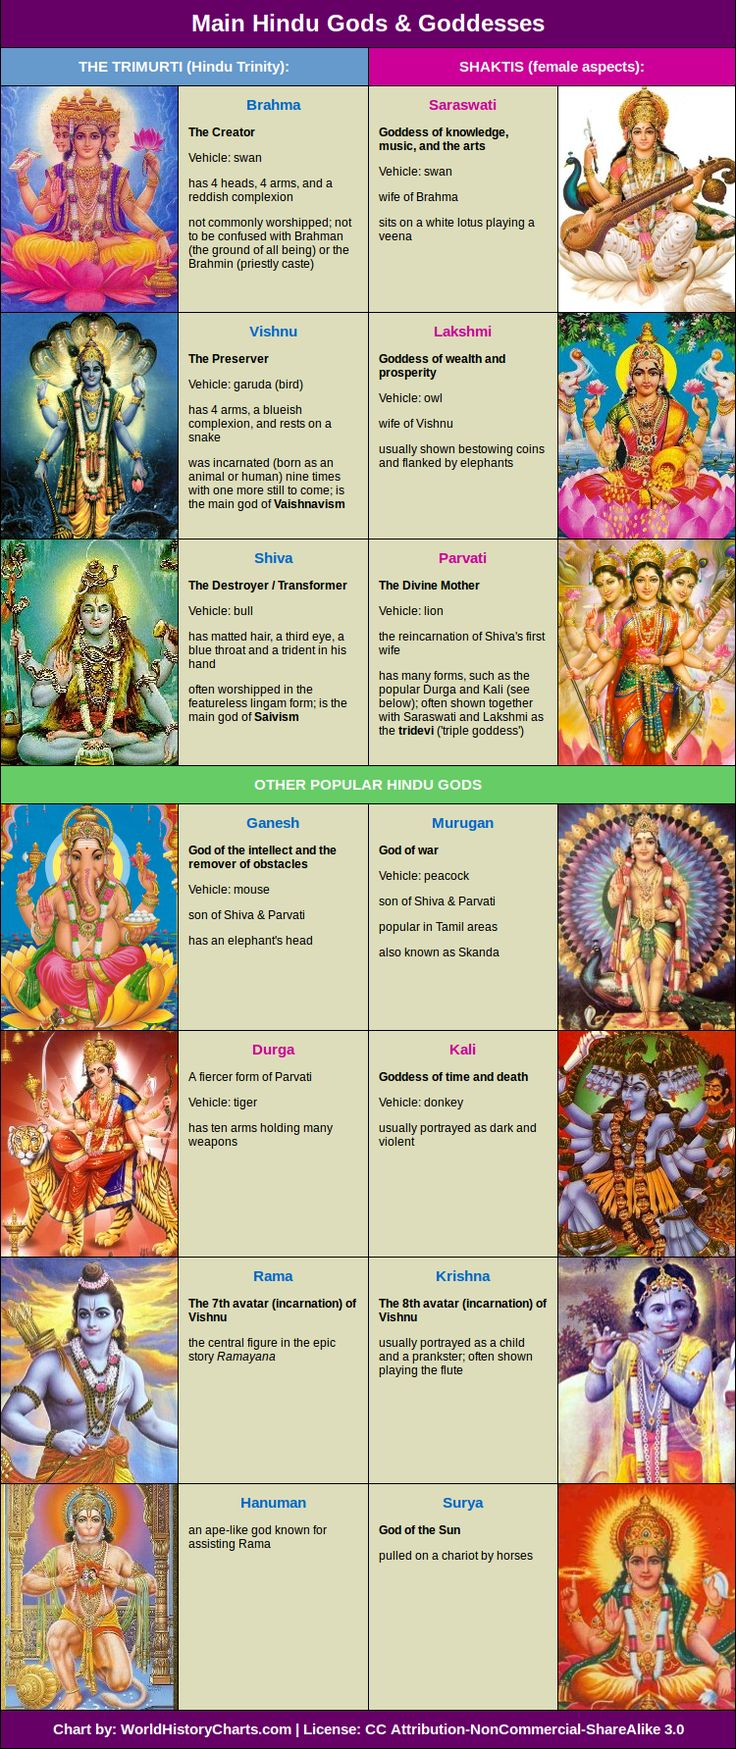 Mythology + Religion: Main Hindu Gods + Goddesses Chart | #MythologyAndReligion #HinduMythology #GodsAndGoddesses